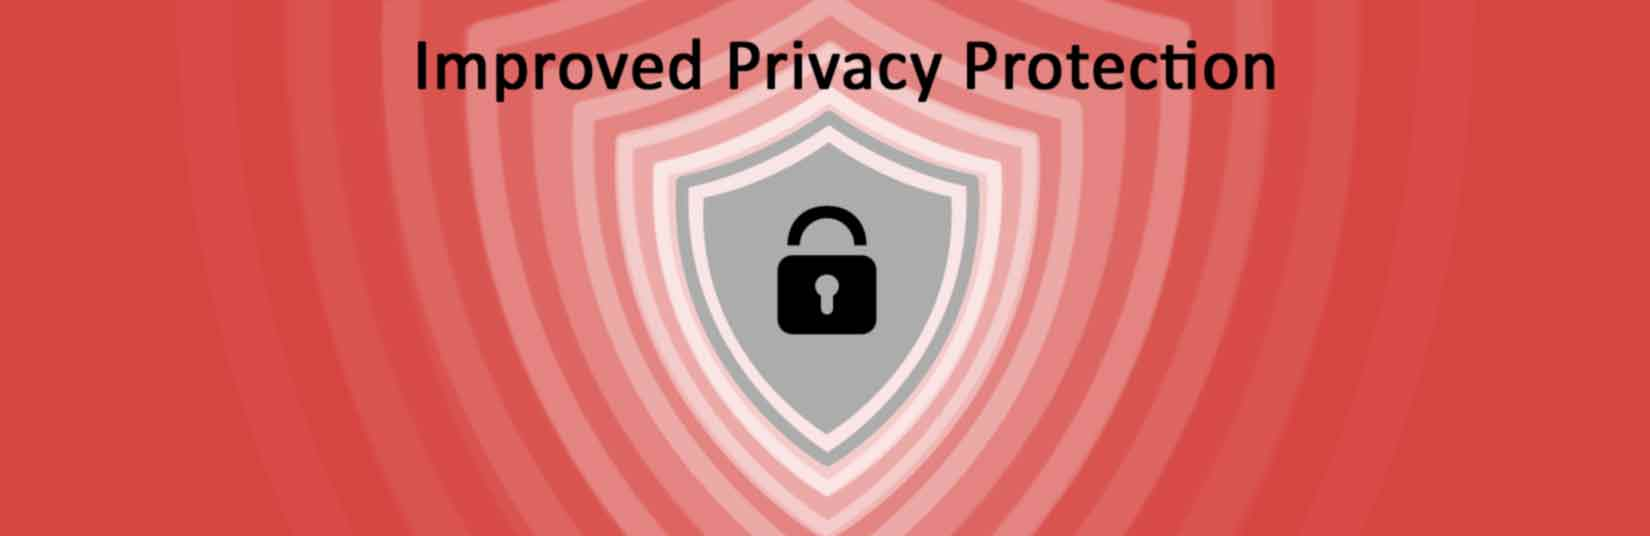 Improved privacy protection